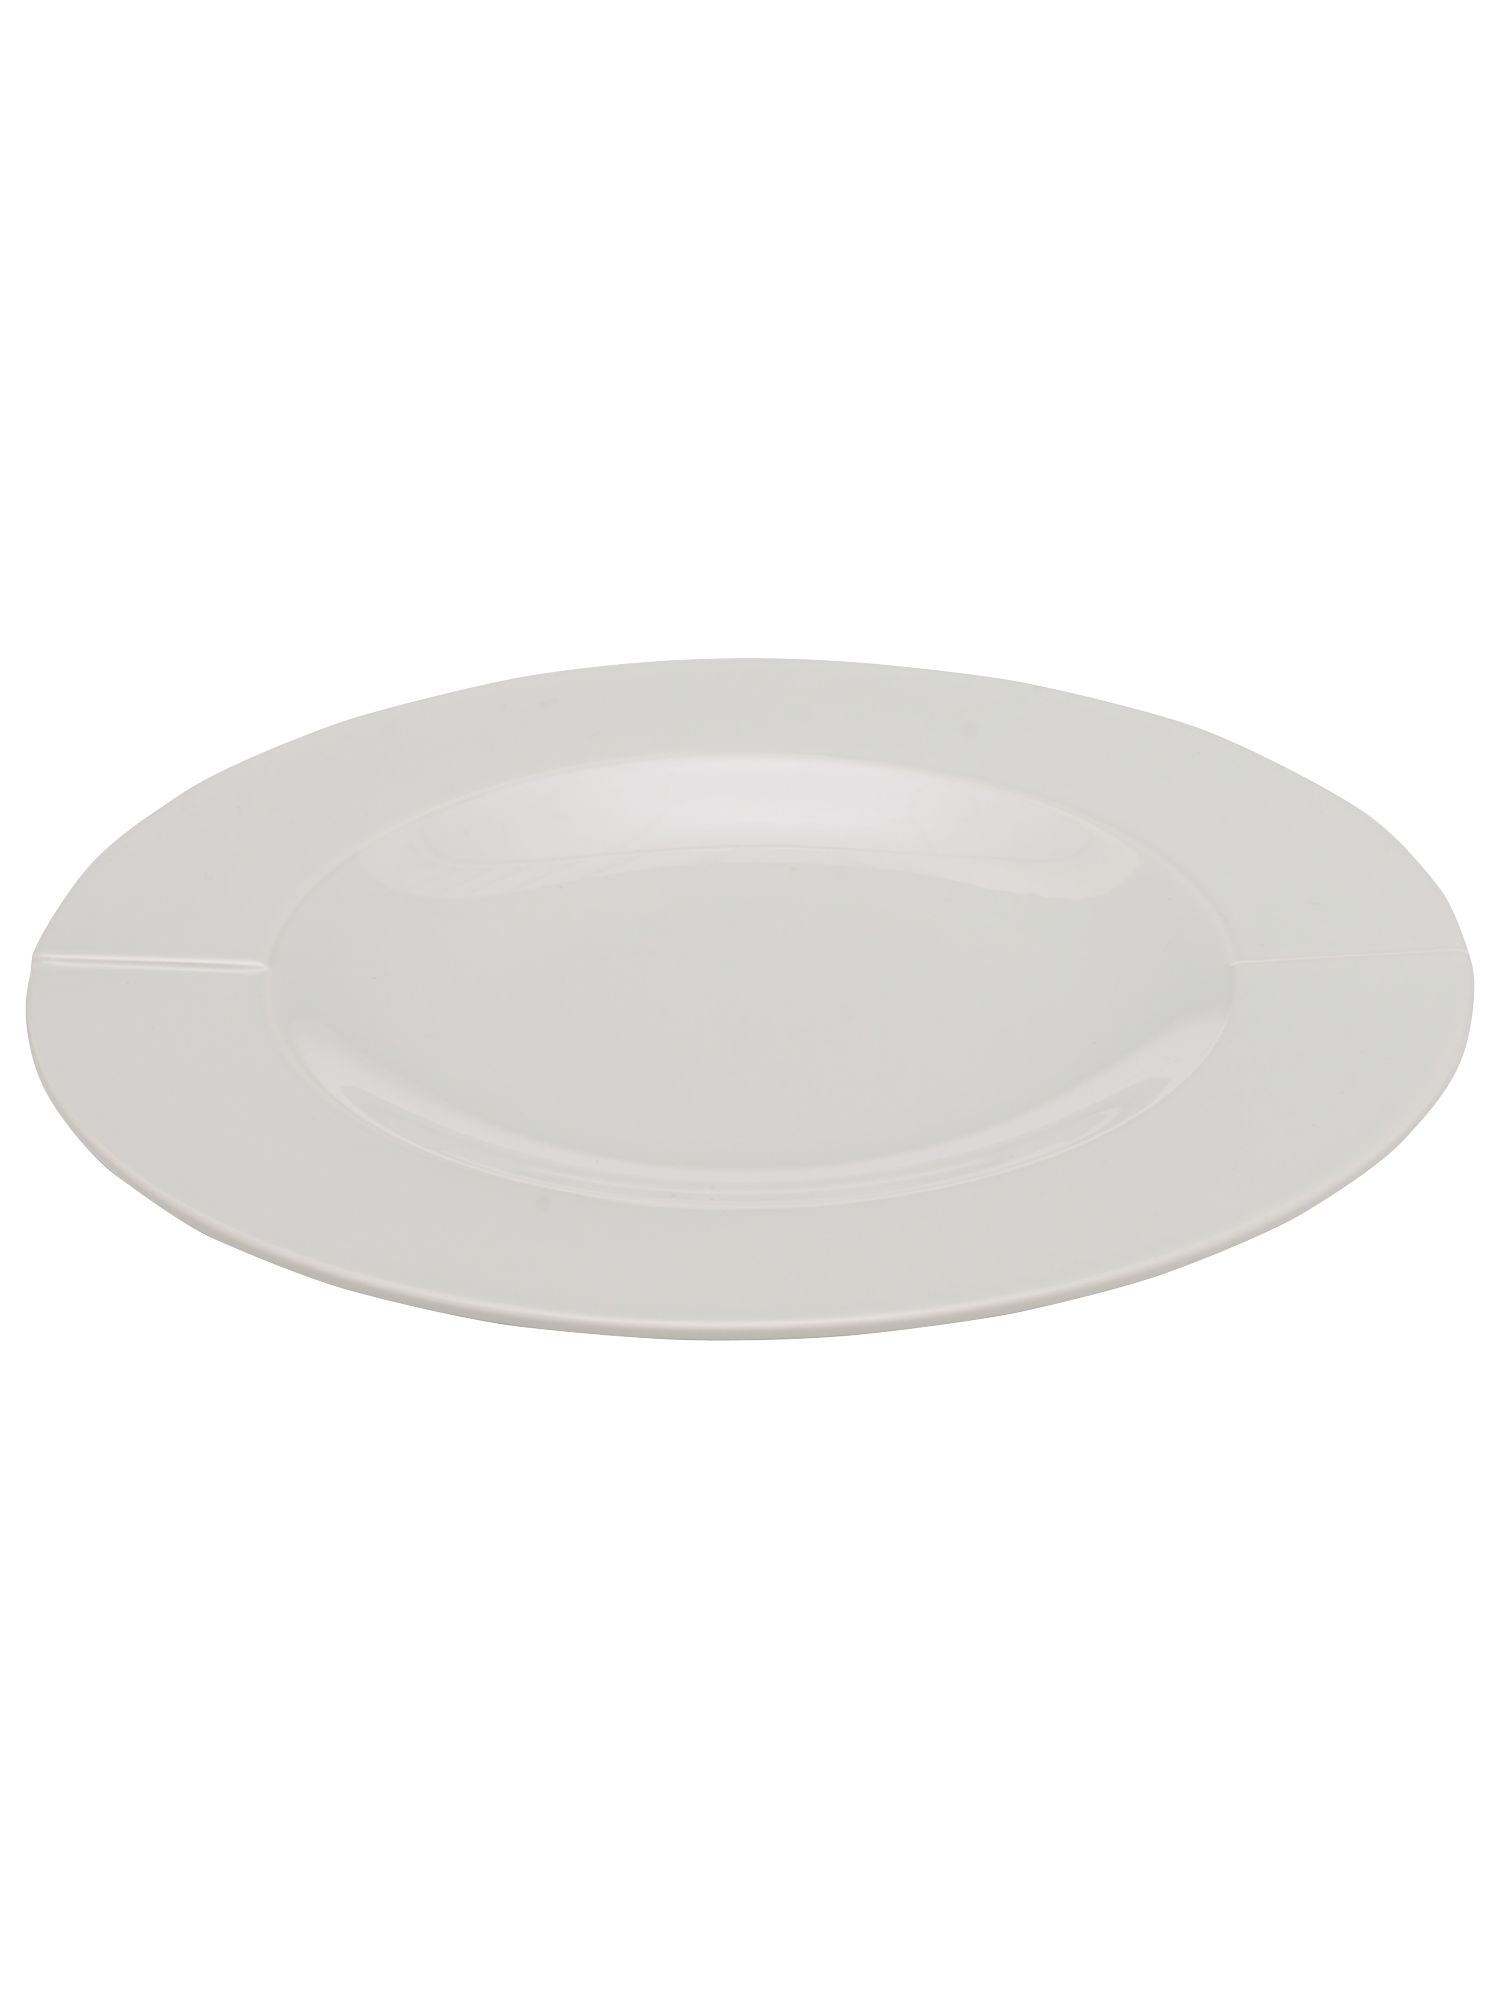 James Martin Dine Salad Plate